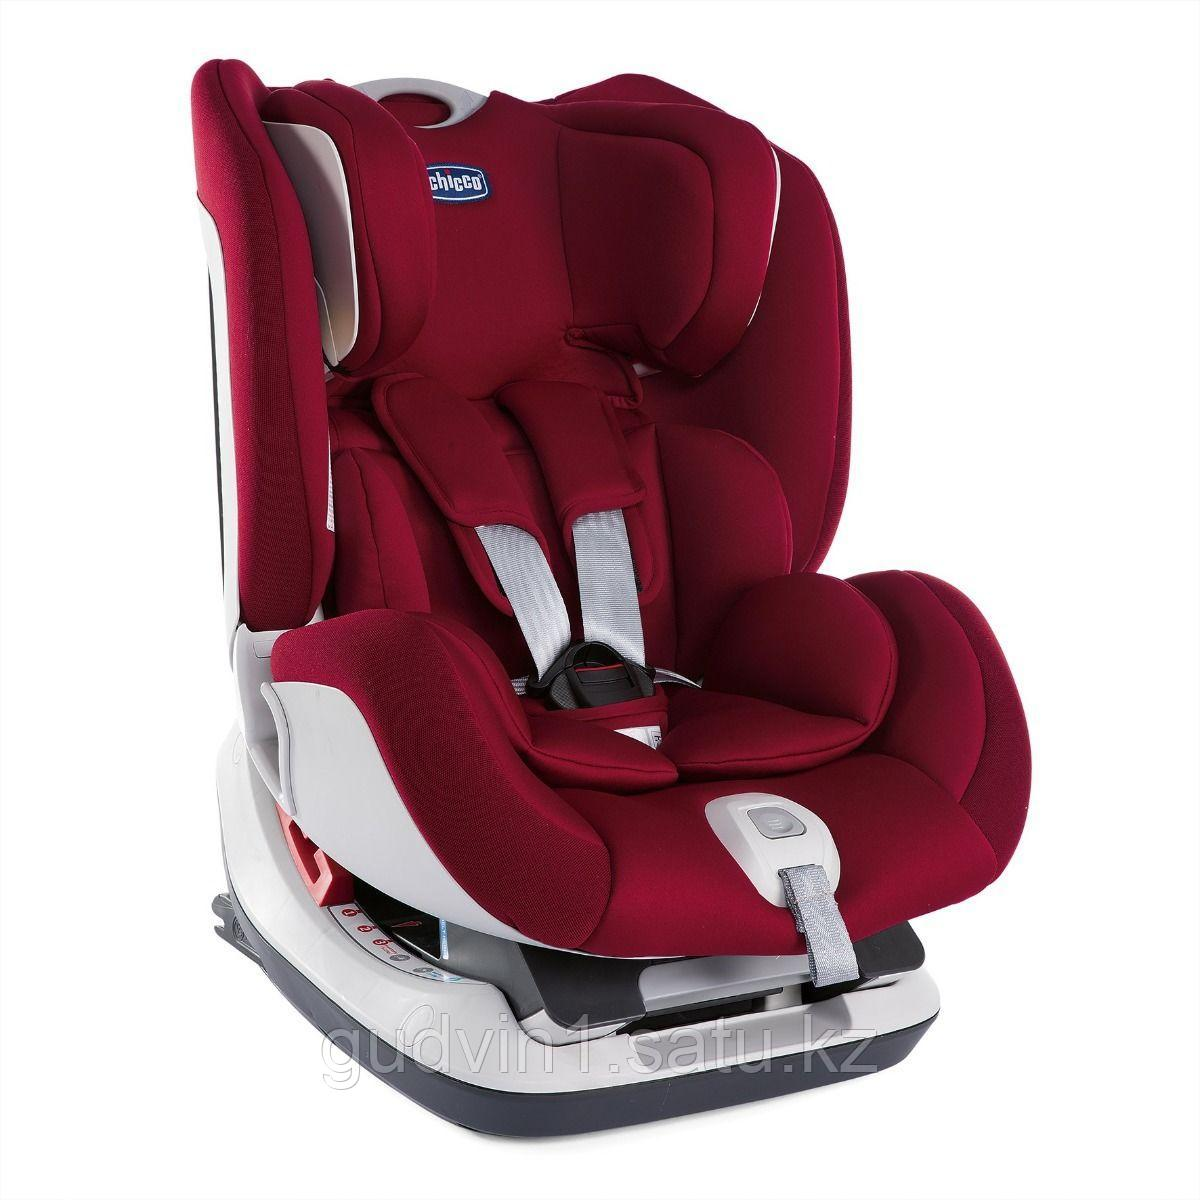 Chicco: Автокресло Seat Up 012 Red Passion (0-25 kg) 0+ код: 1066011